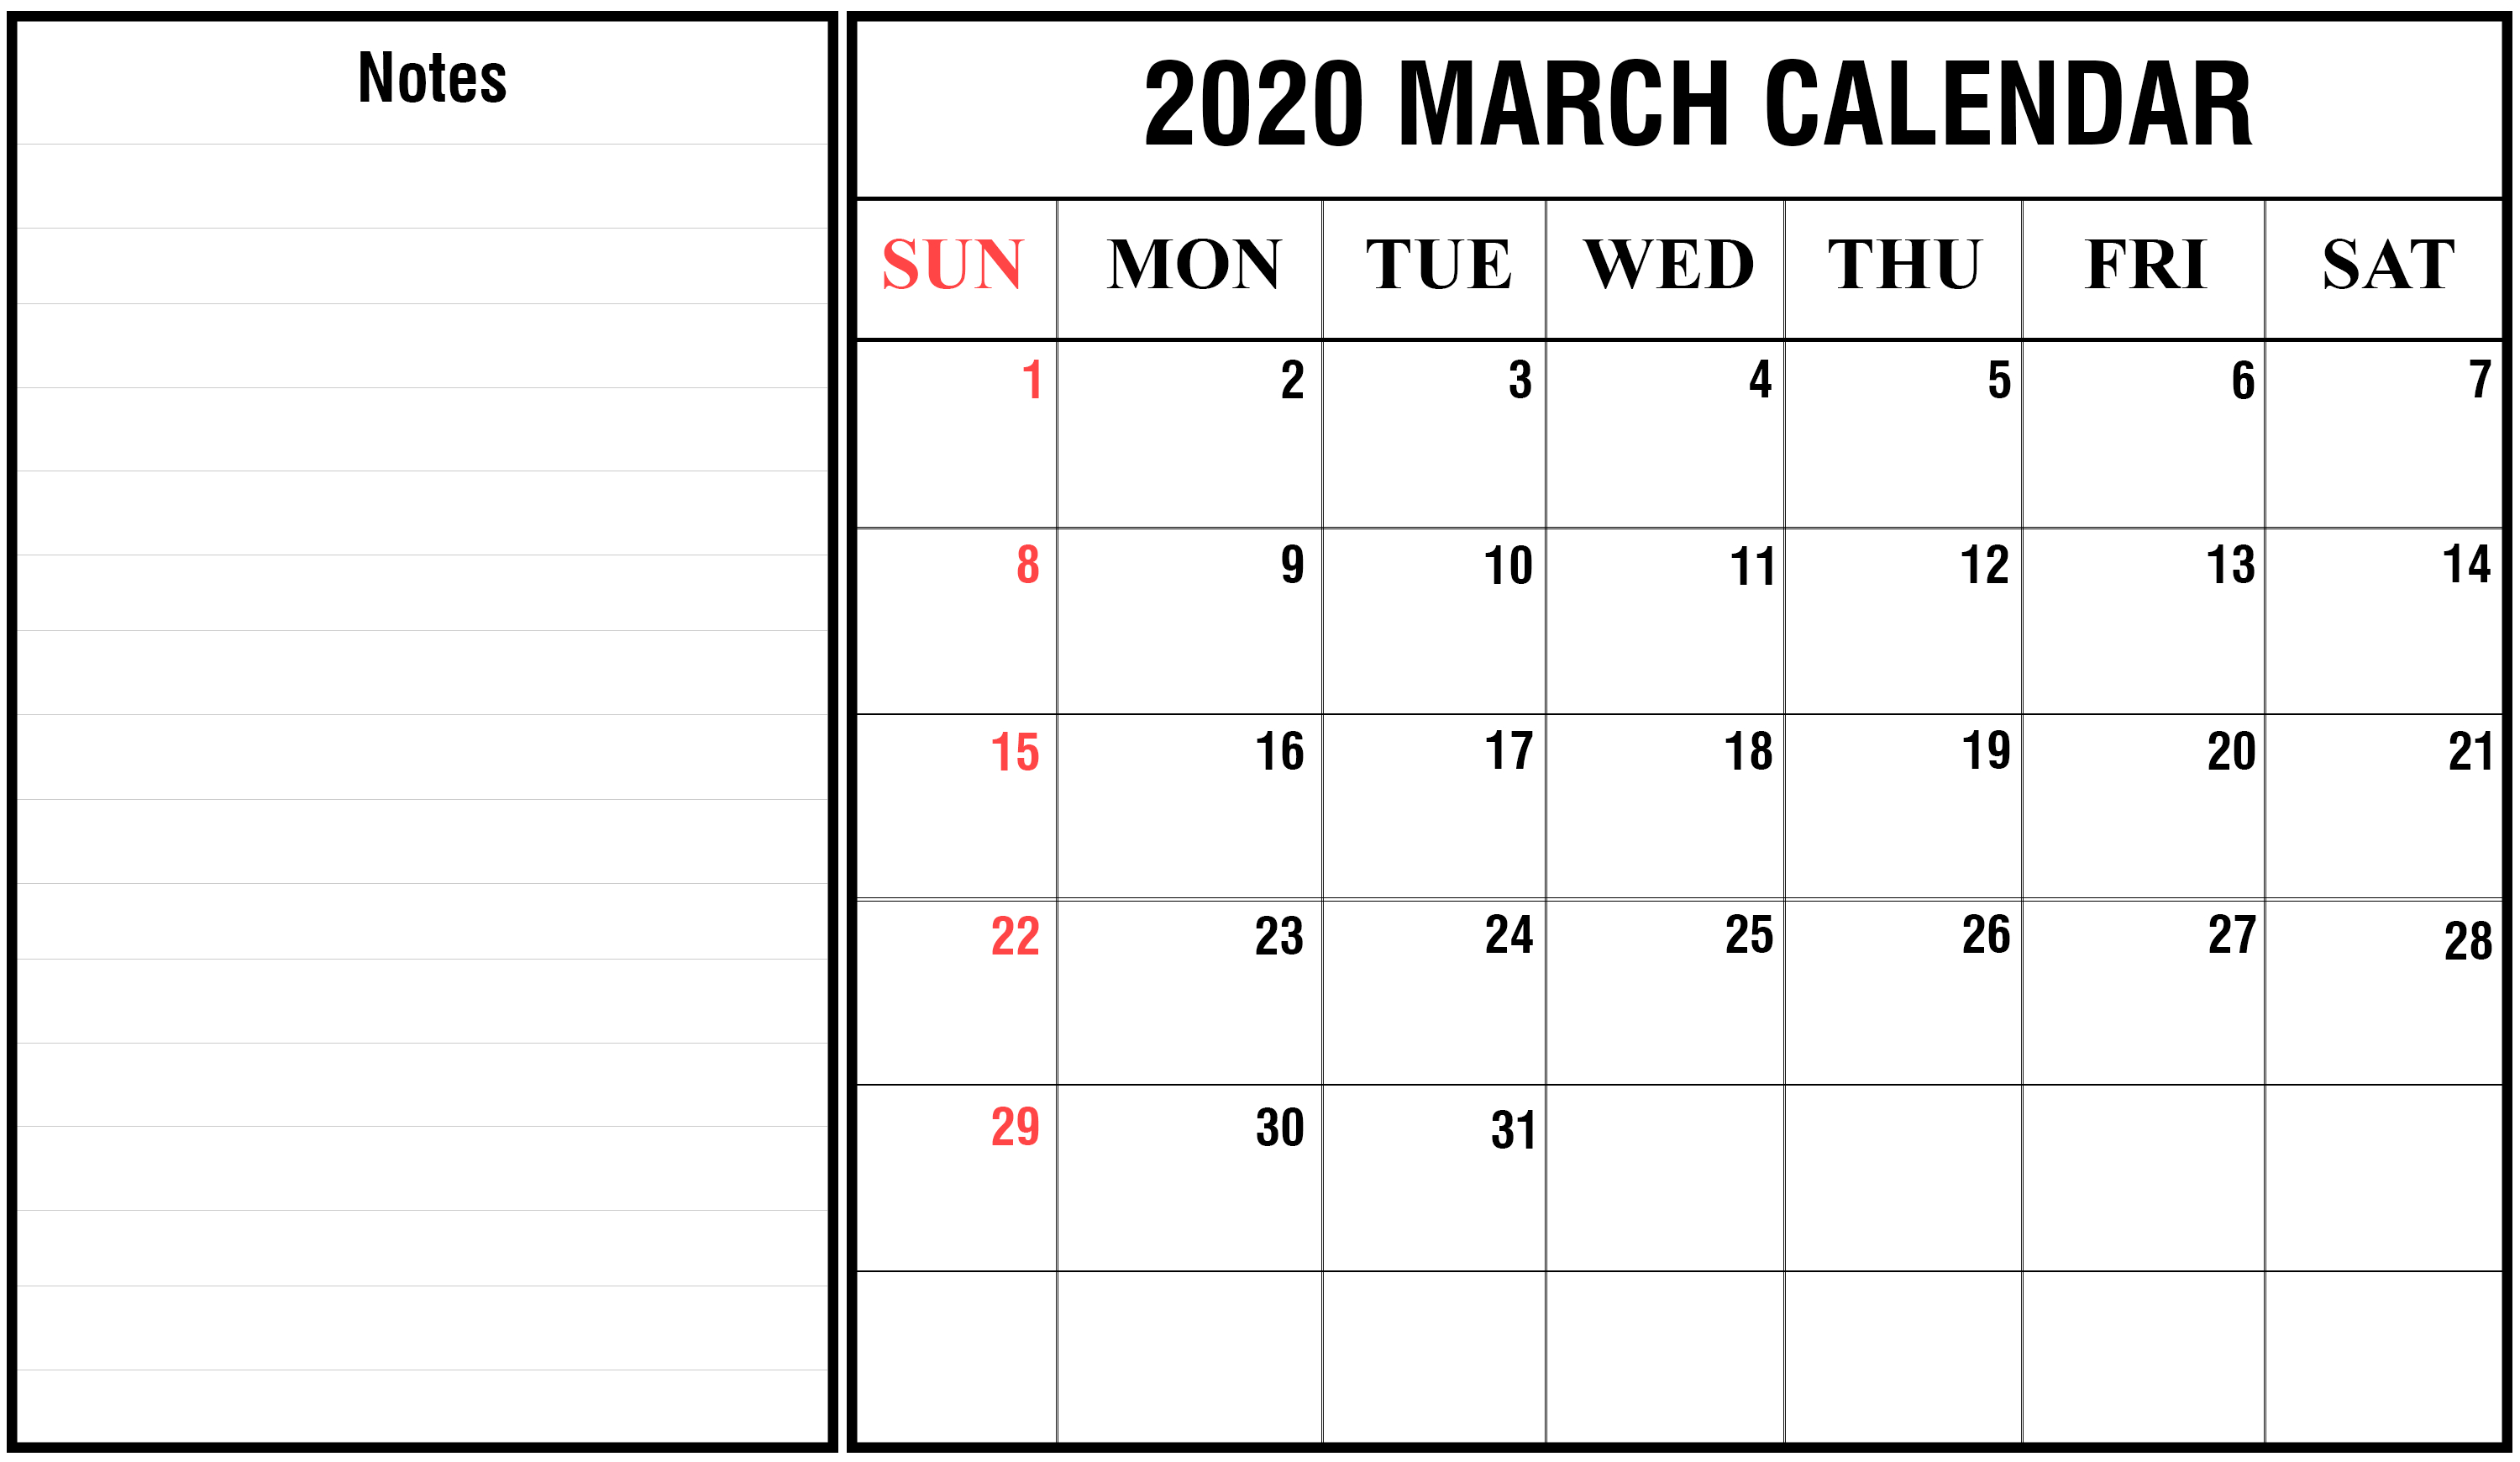 Free Printable March Calendar 2020 Blank Template Editable intended for 2020 Calendar You Can Edit